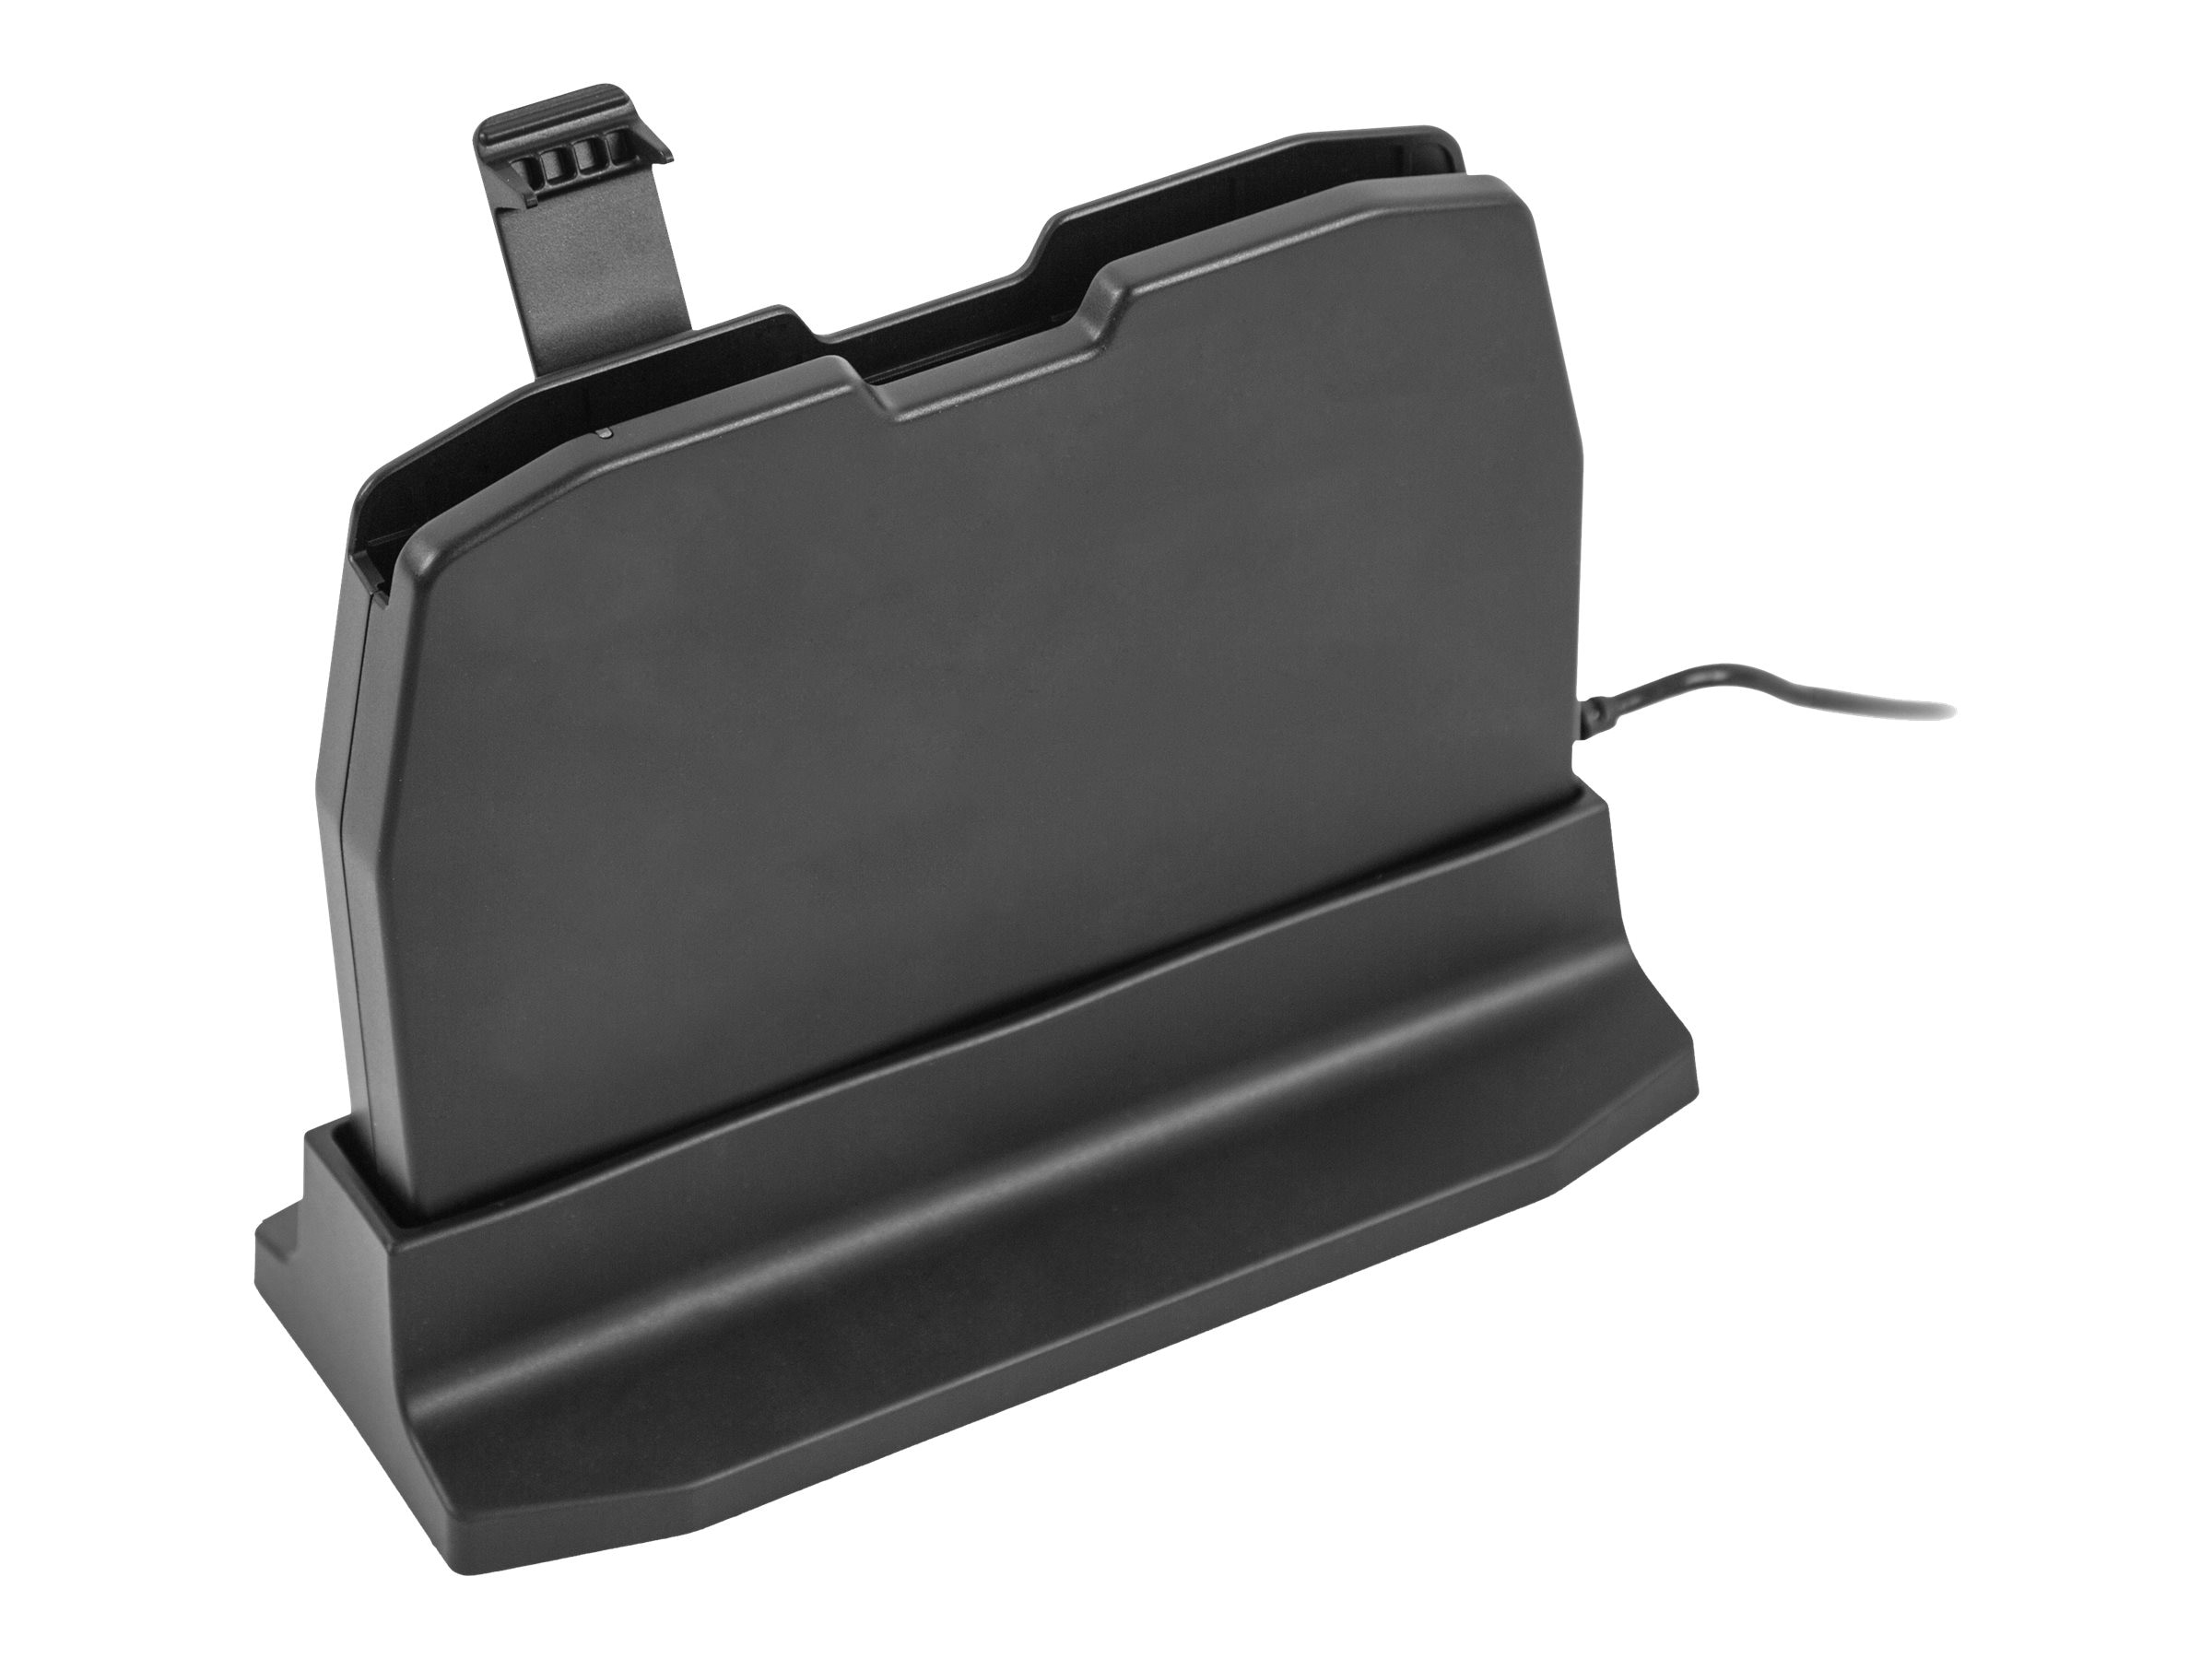 Motion R12-Series Desktop Battery Charger Kit, US Power Supply, 510.241.01, 18136459, Battery Chargers